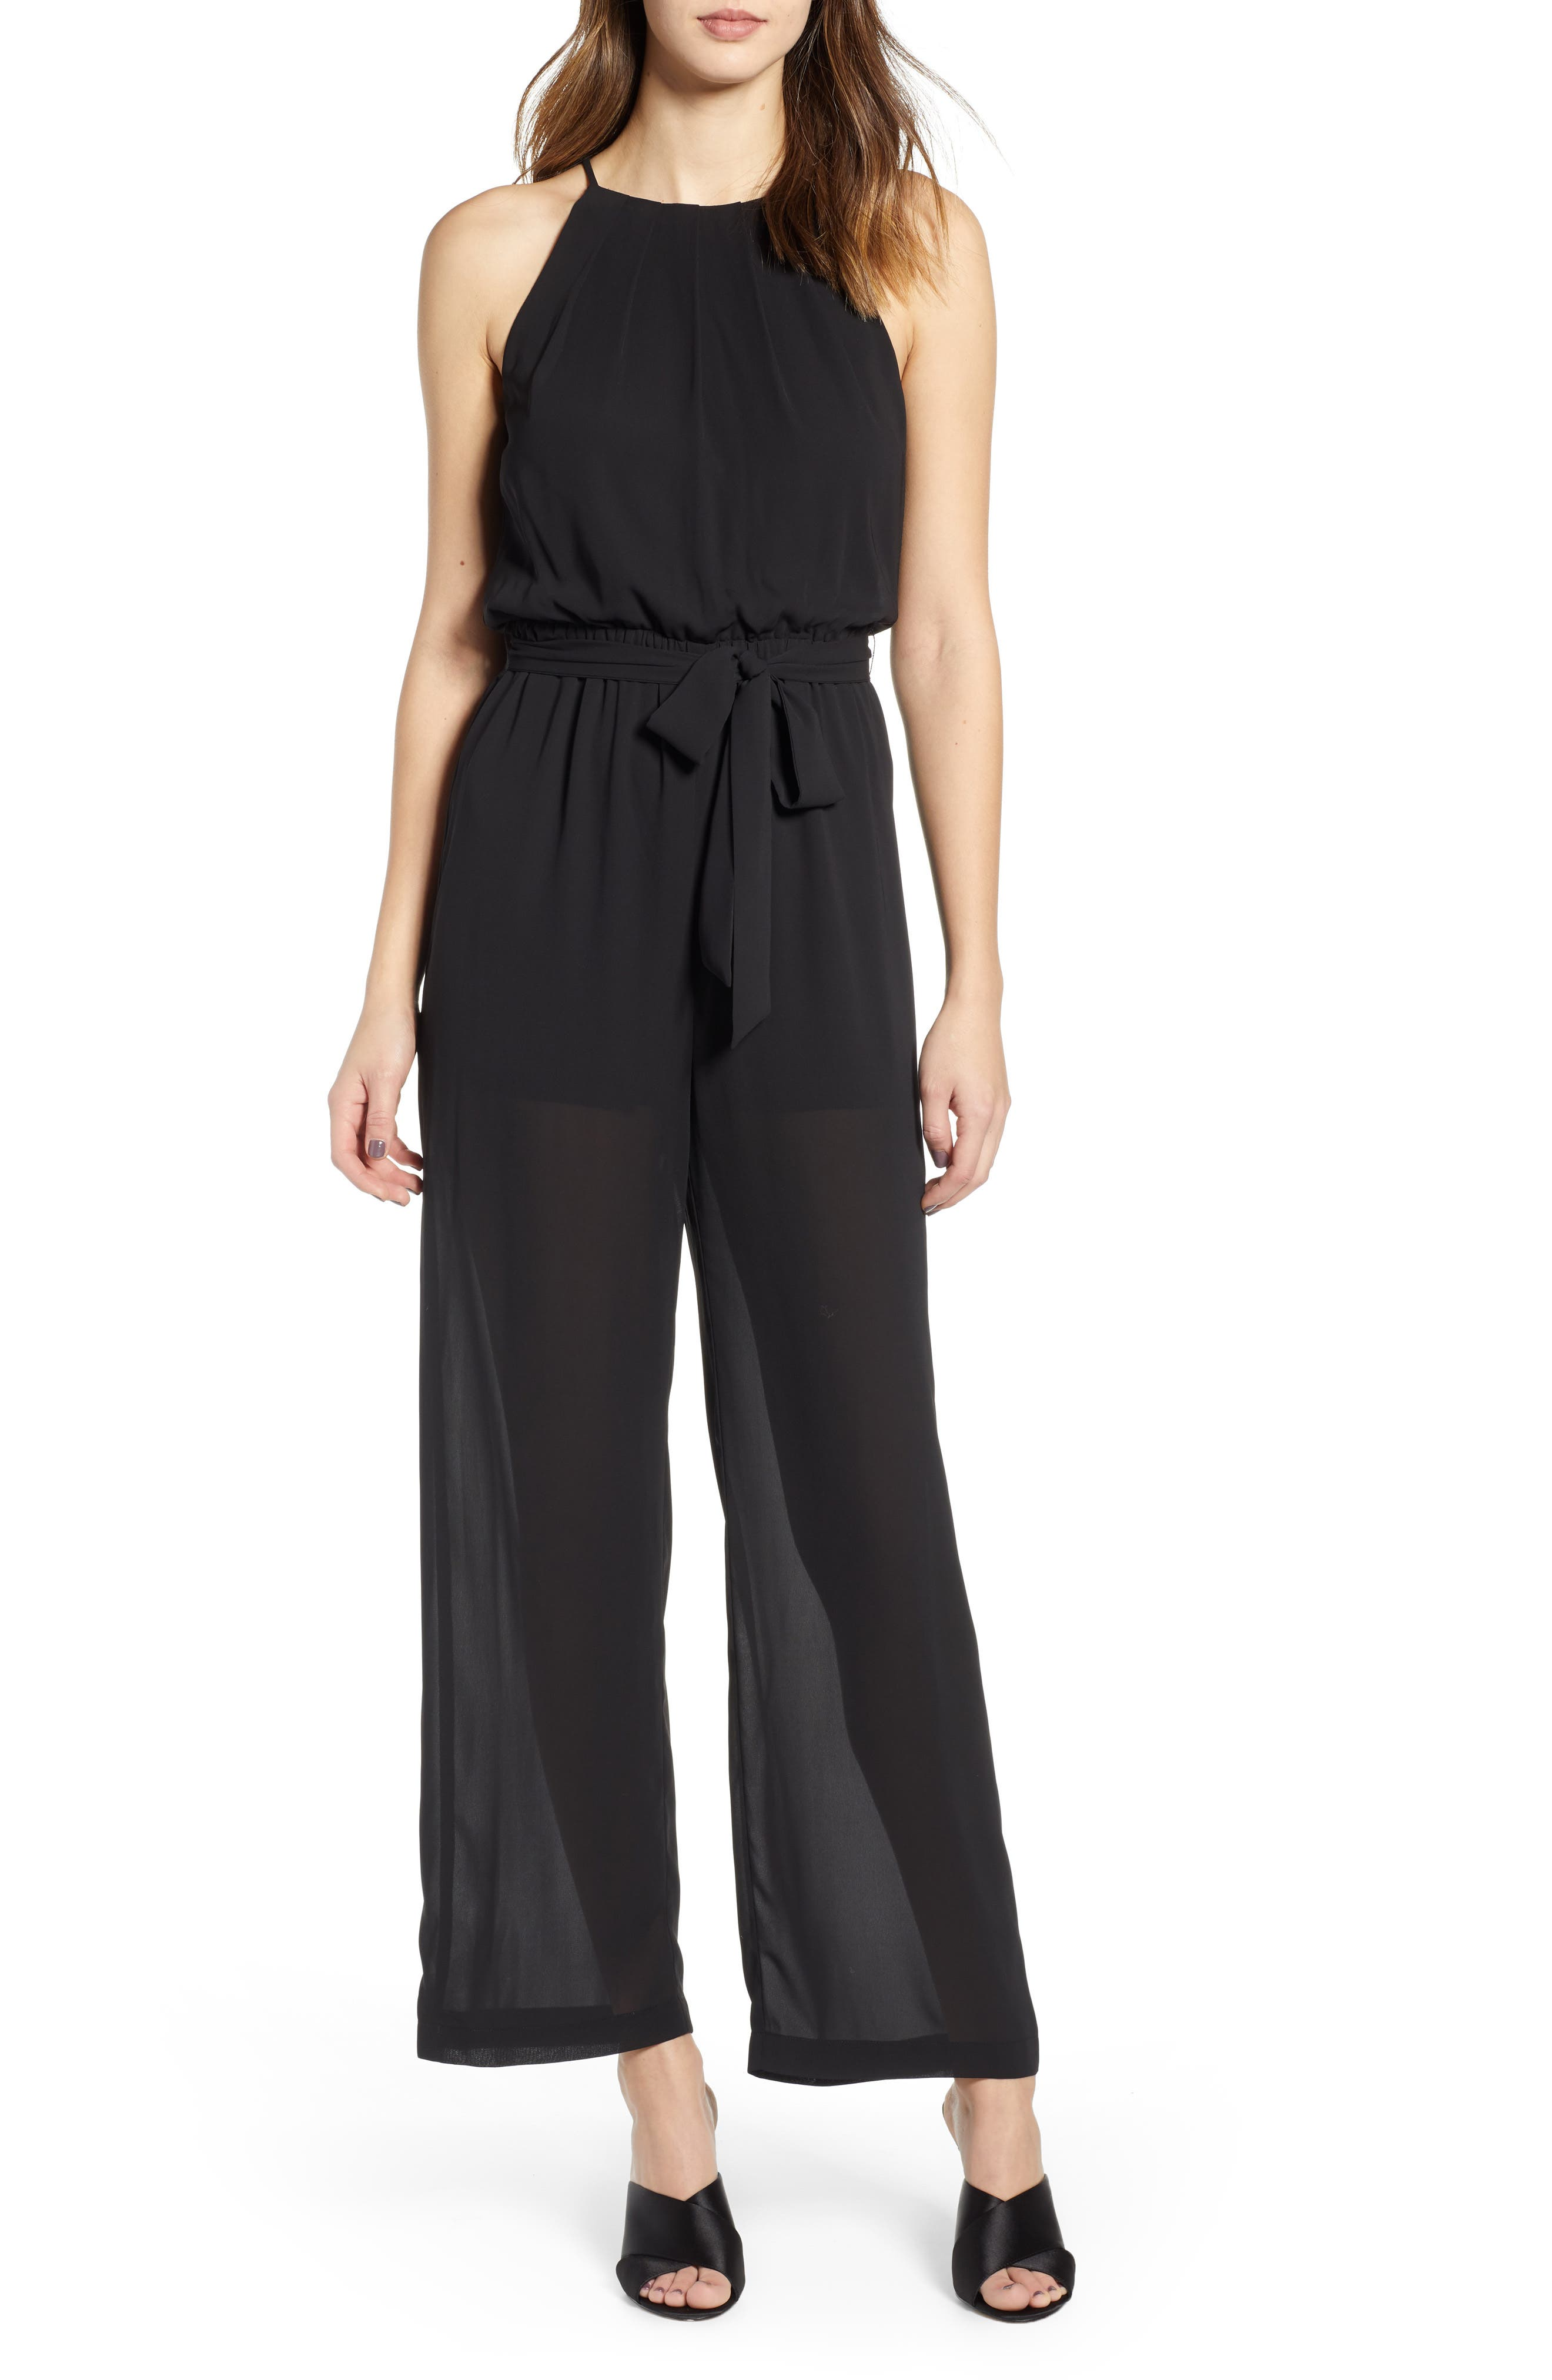 ALL IN FAVOR, Blouson Chiffon Jumpsuit, Main thumbnail 1, color, BLACK